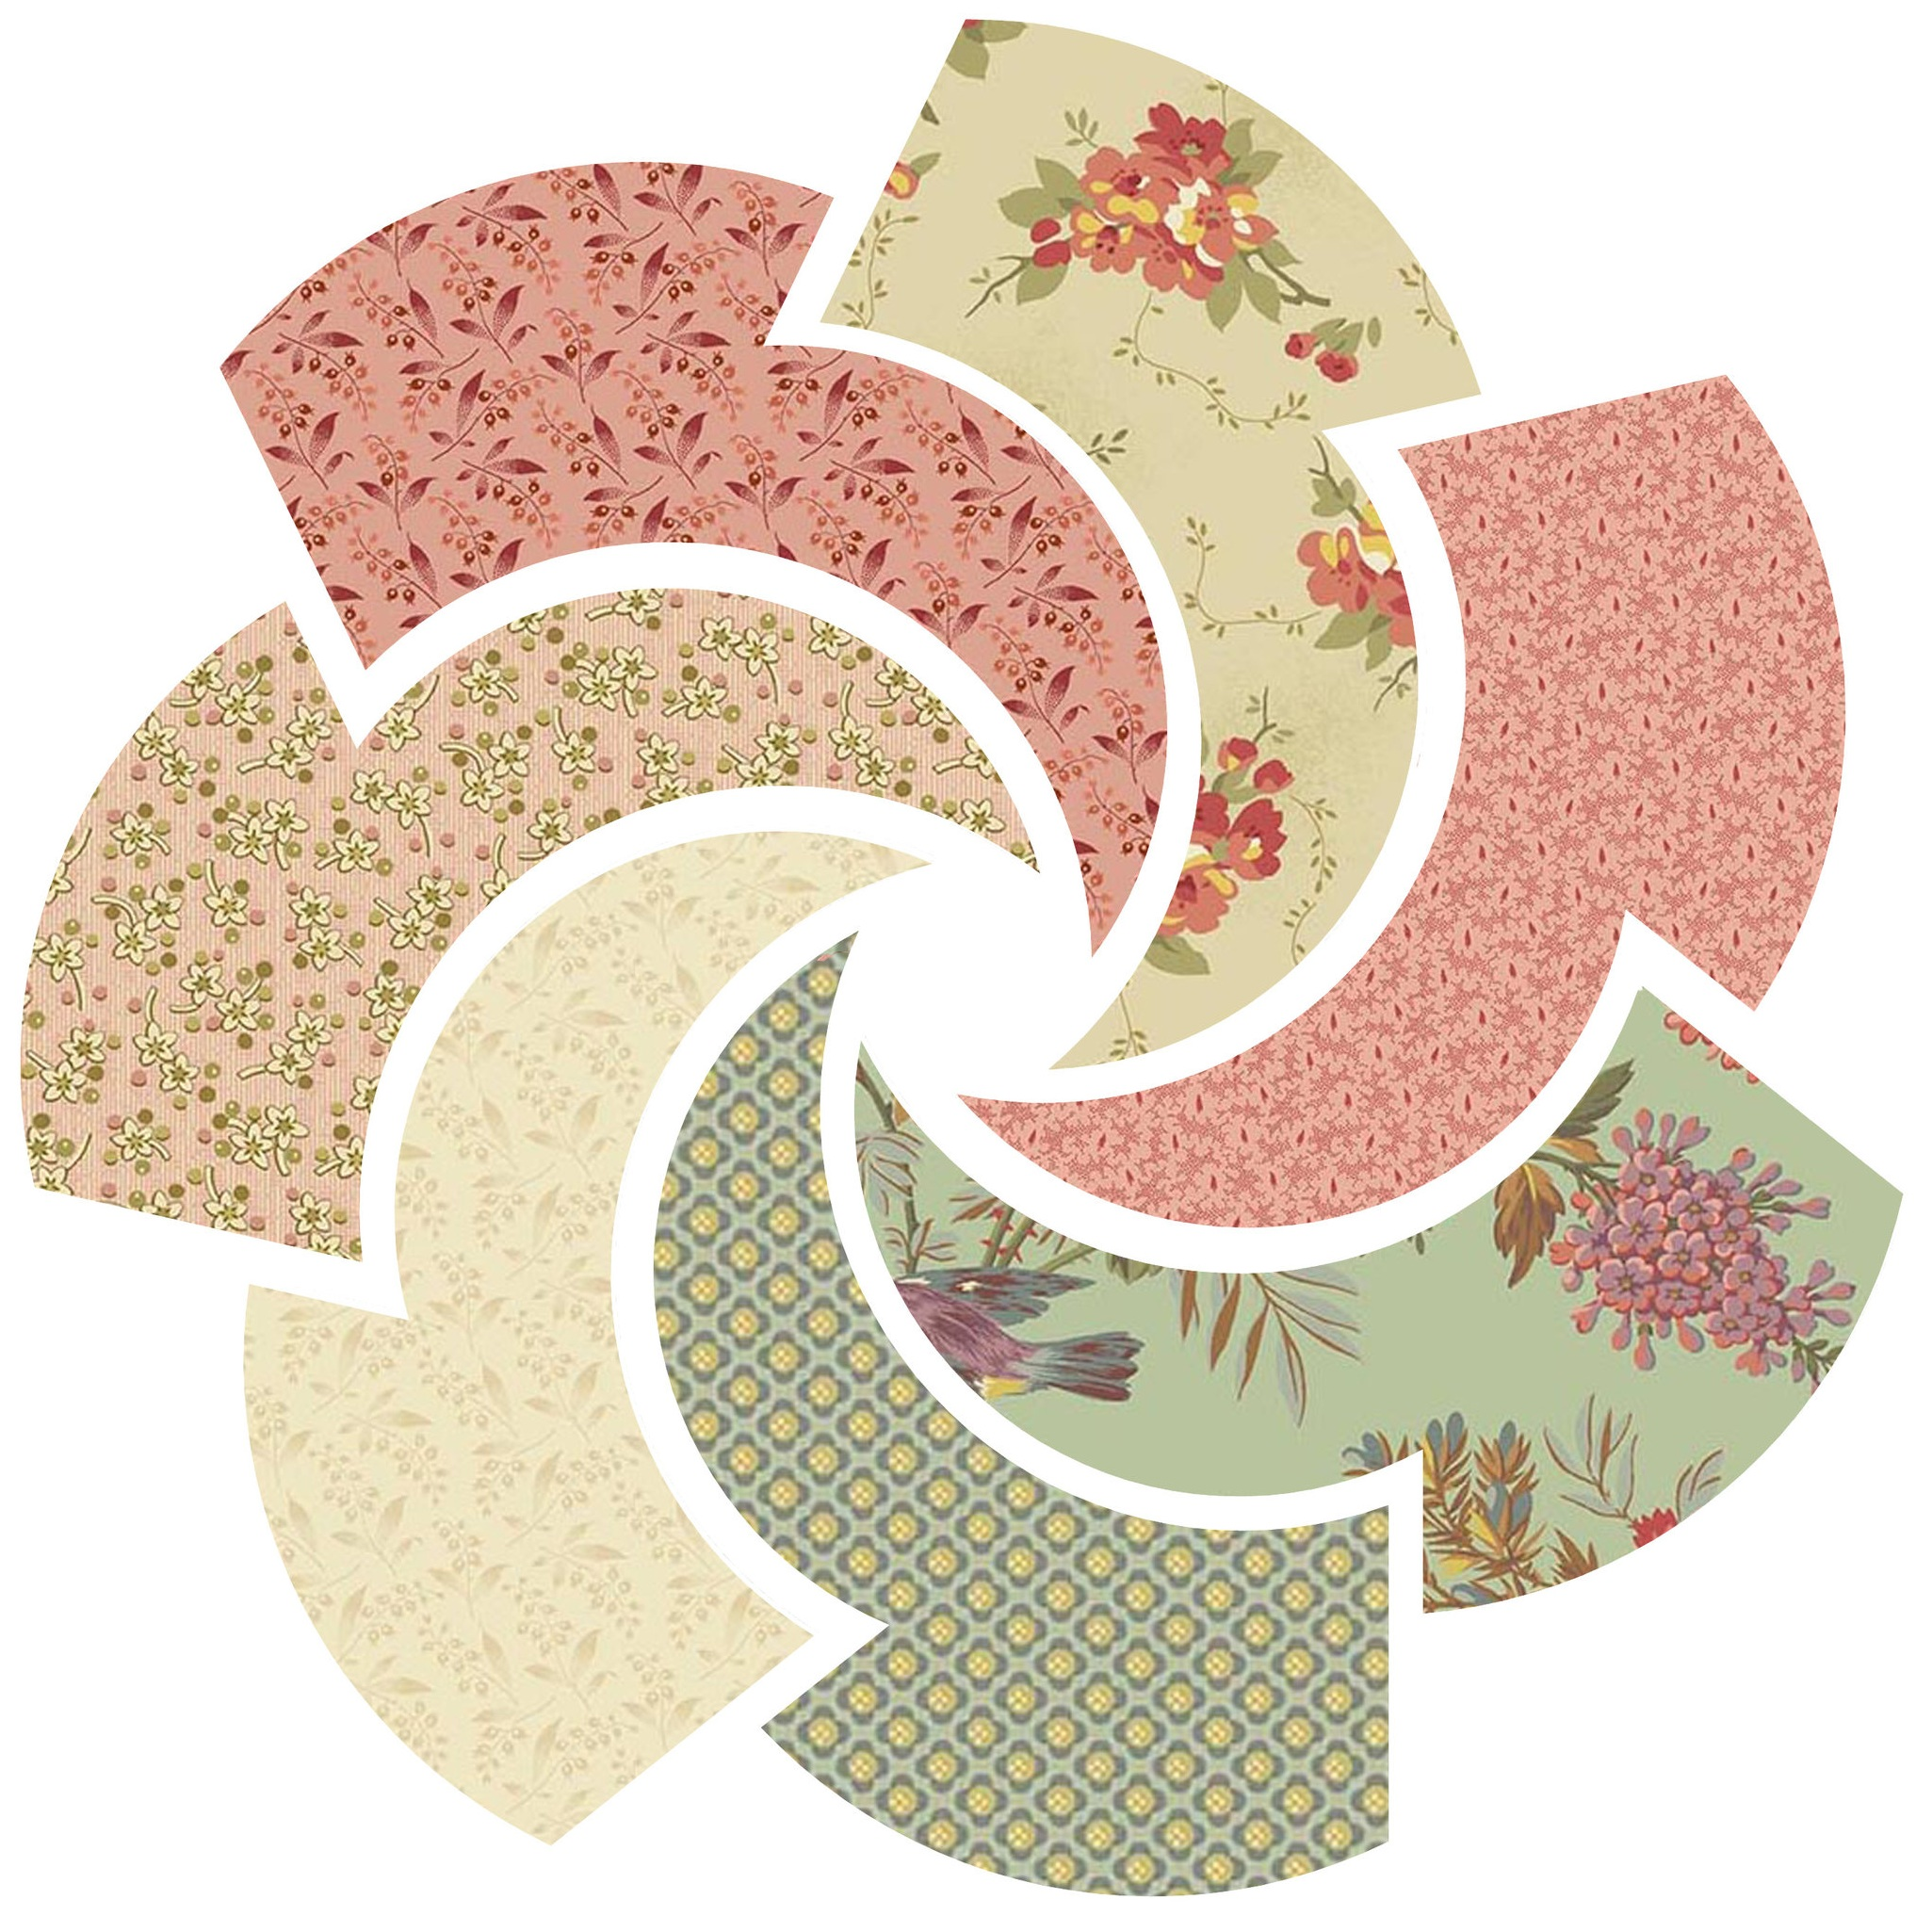 Bed of Roses by Edyta Sitar for Andover Fabrics